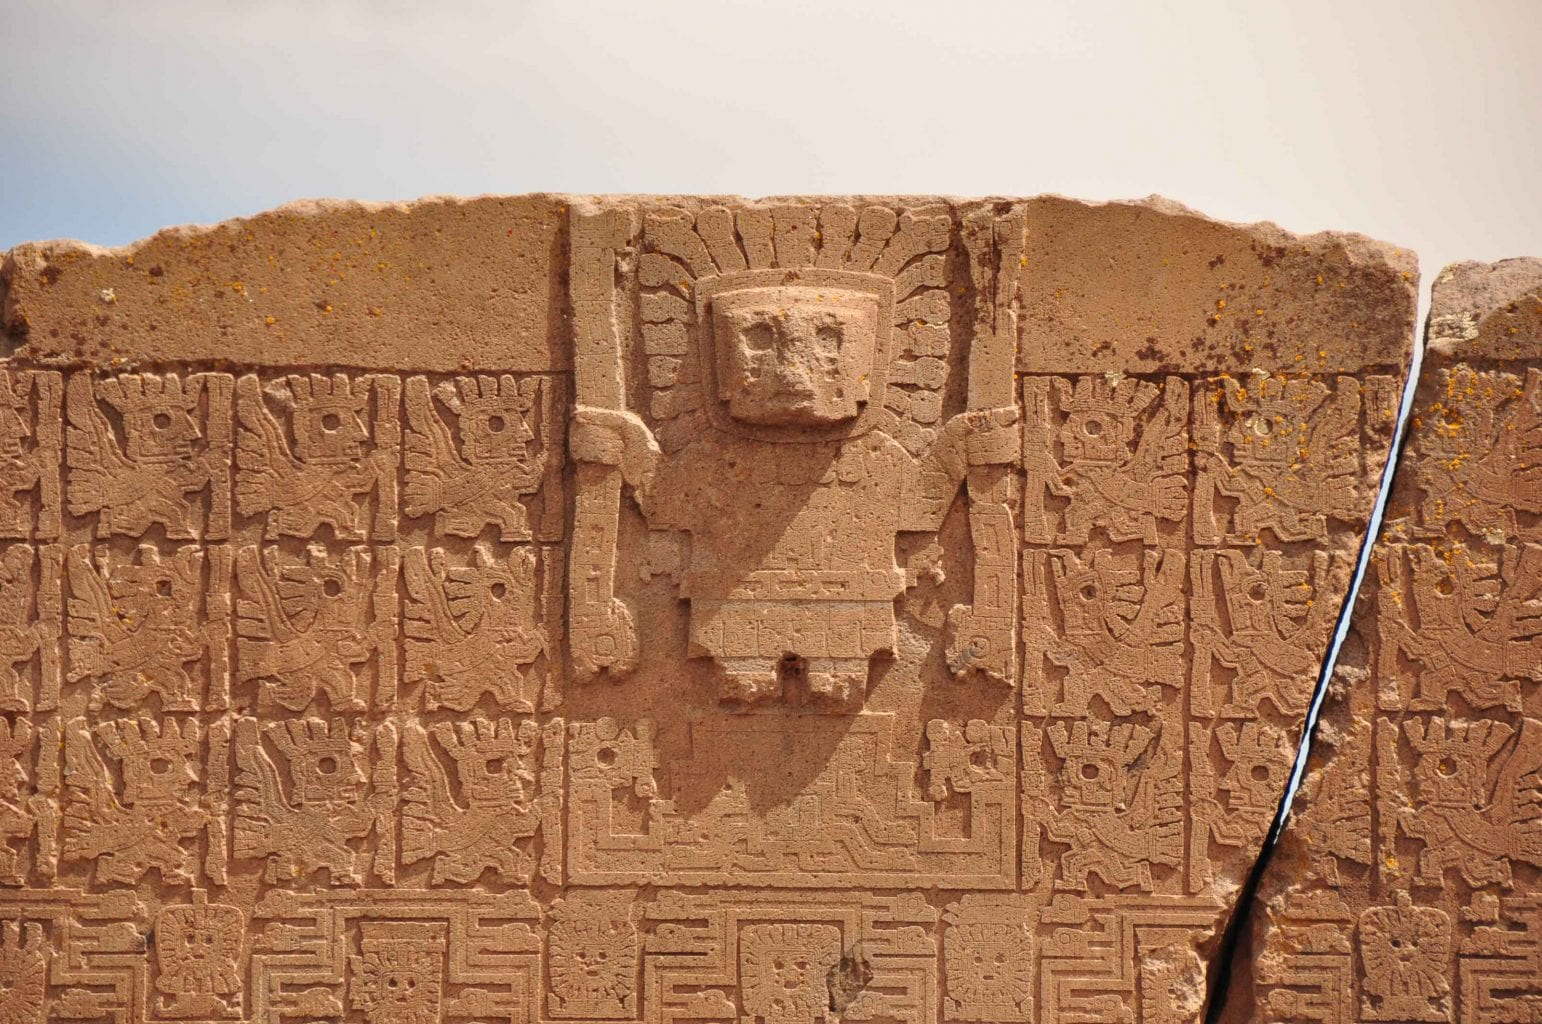 This is a representation of Viracocha from the site of Tiahuanaco in Bolivia. Although it it not an Inca creation but one of the Tiwanaku culture, it proves how significant Viracocha was for this entire Andean region. Credit: Melting Plots